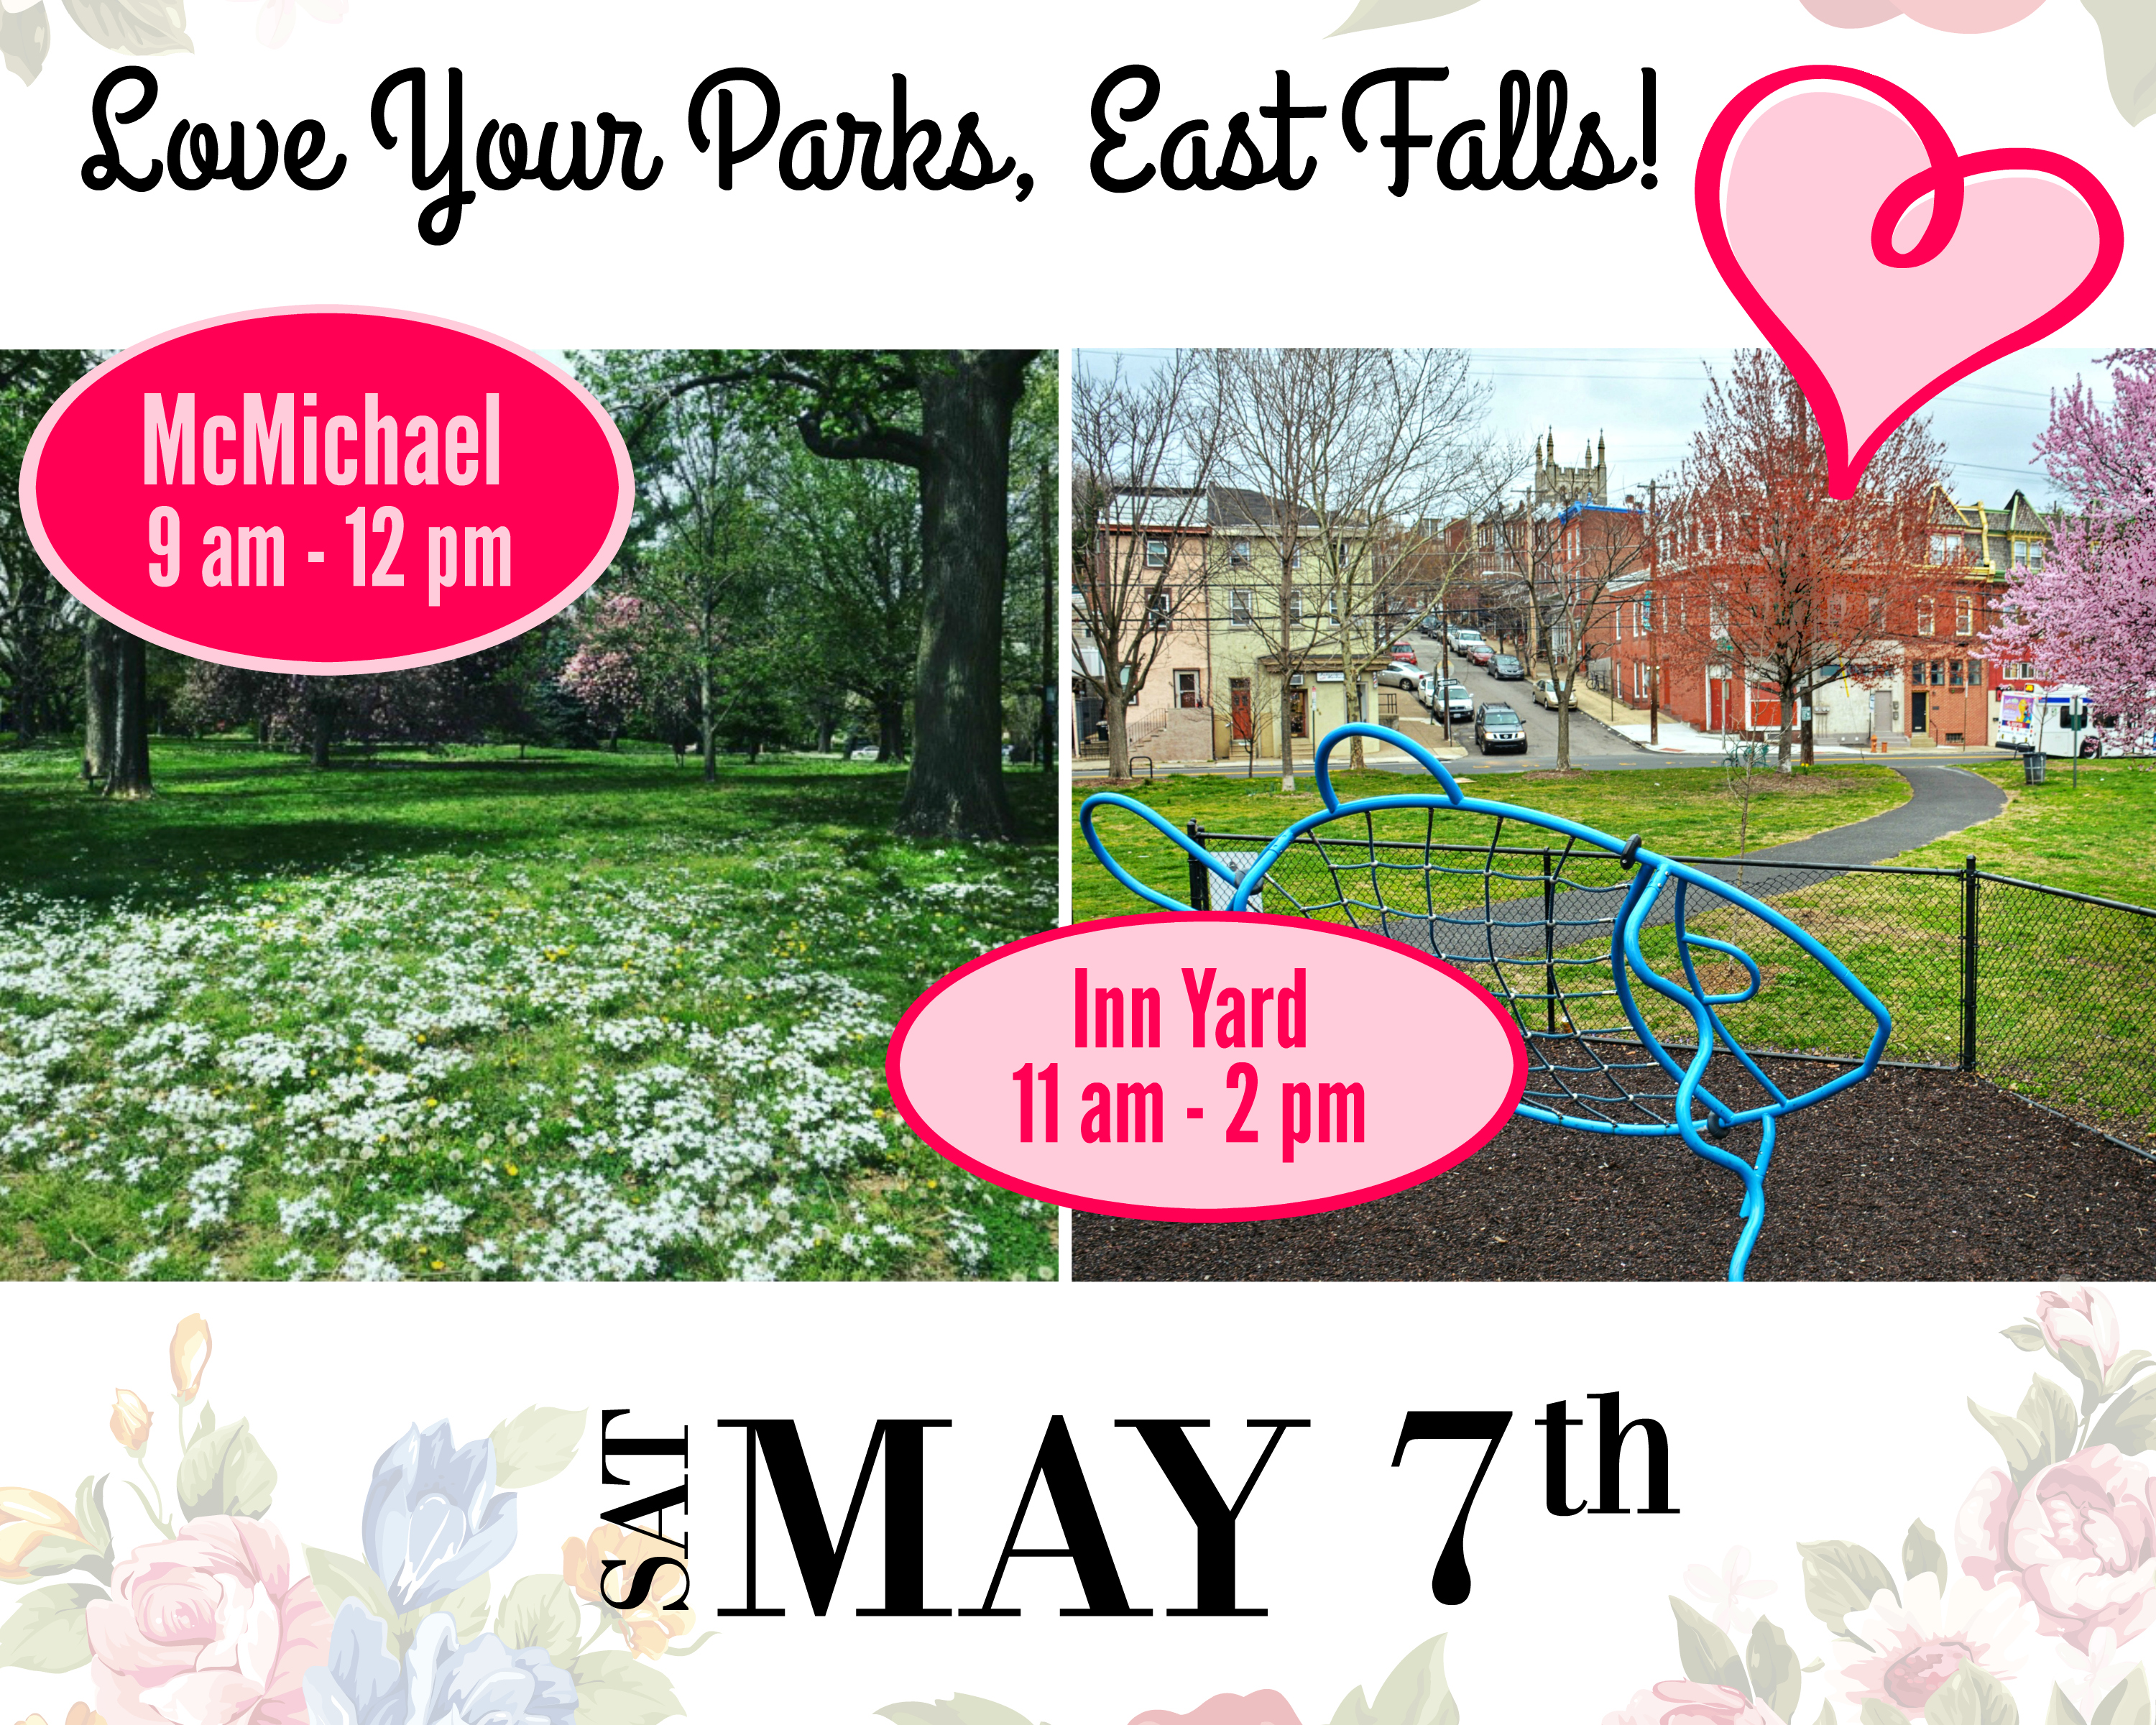 EastFallsLocal LOve YOur Park May 7 East Falls DATE Flowers TIMES